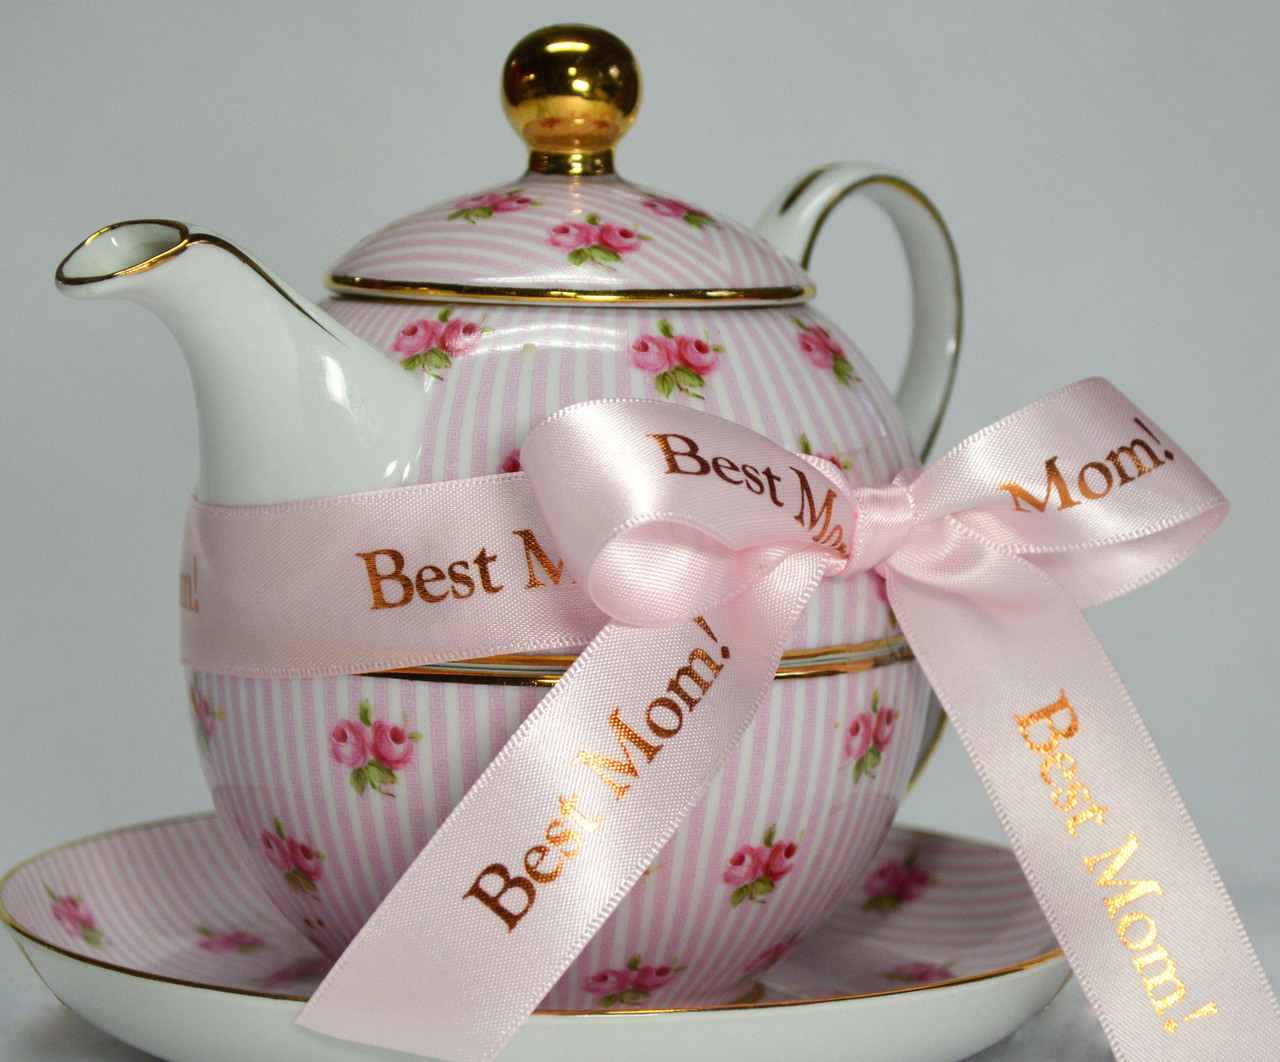 As if this teapot isn't just cute enough?  Best Mom is the Perfect Message for Mother's Day, her Birthday, Any holiday ribbon!